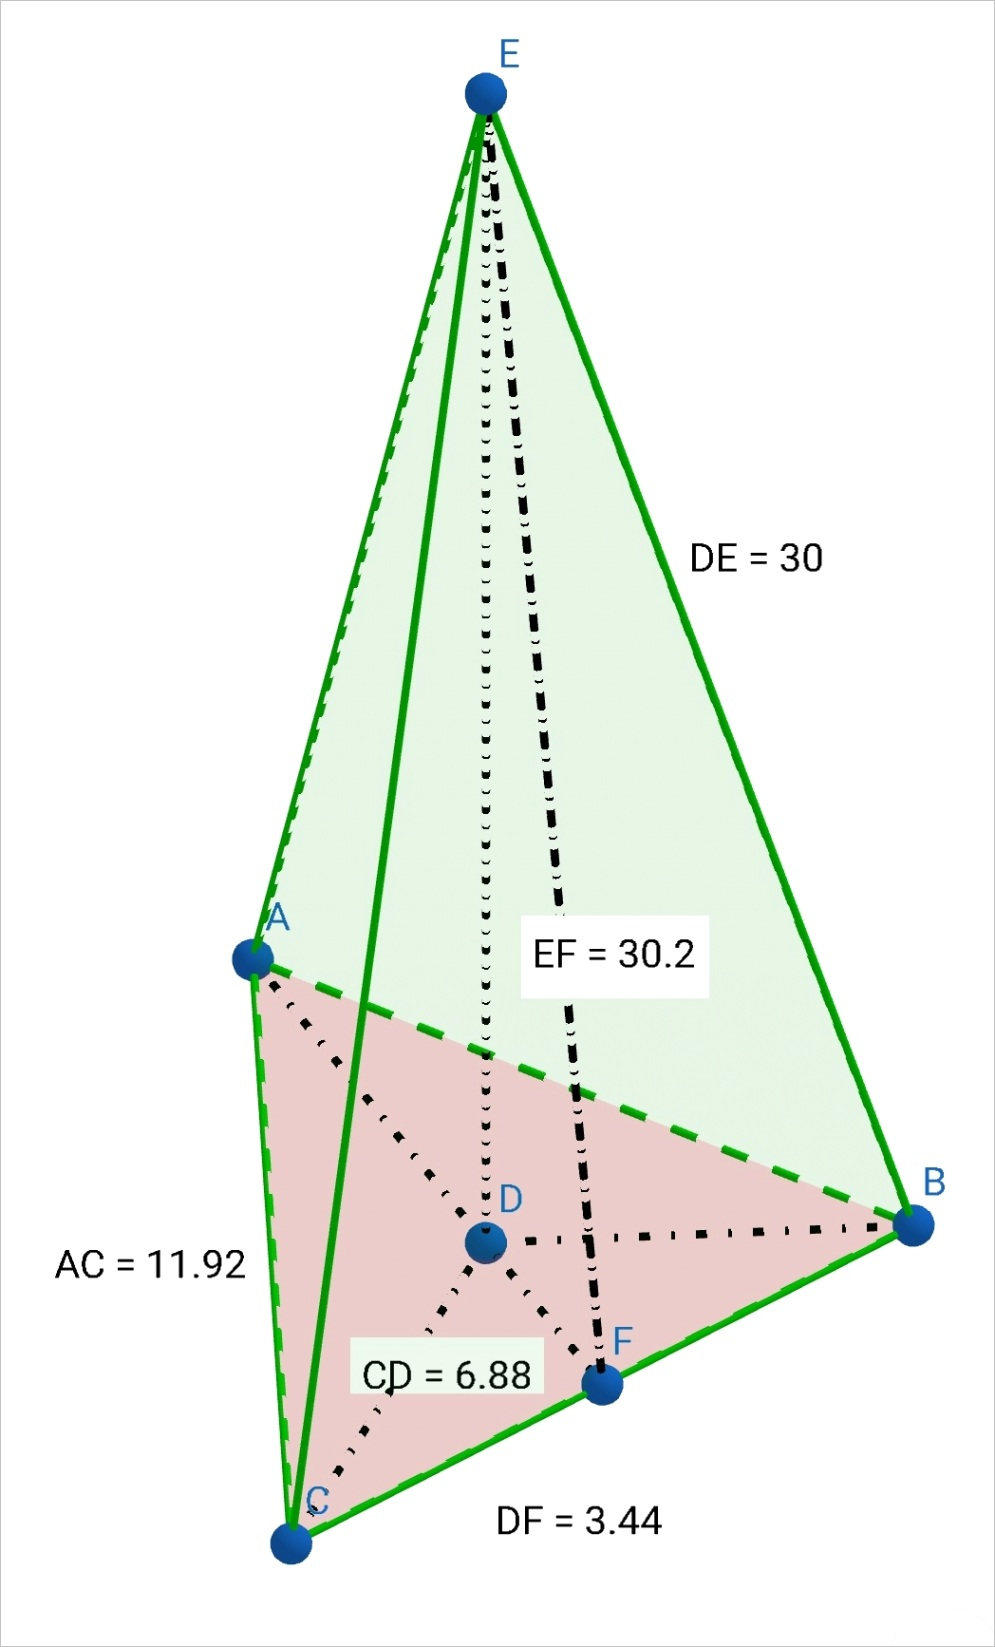 How can you determine the surface area of a triangular pyramid